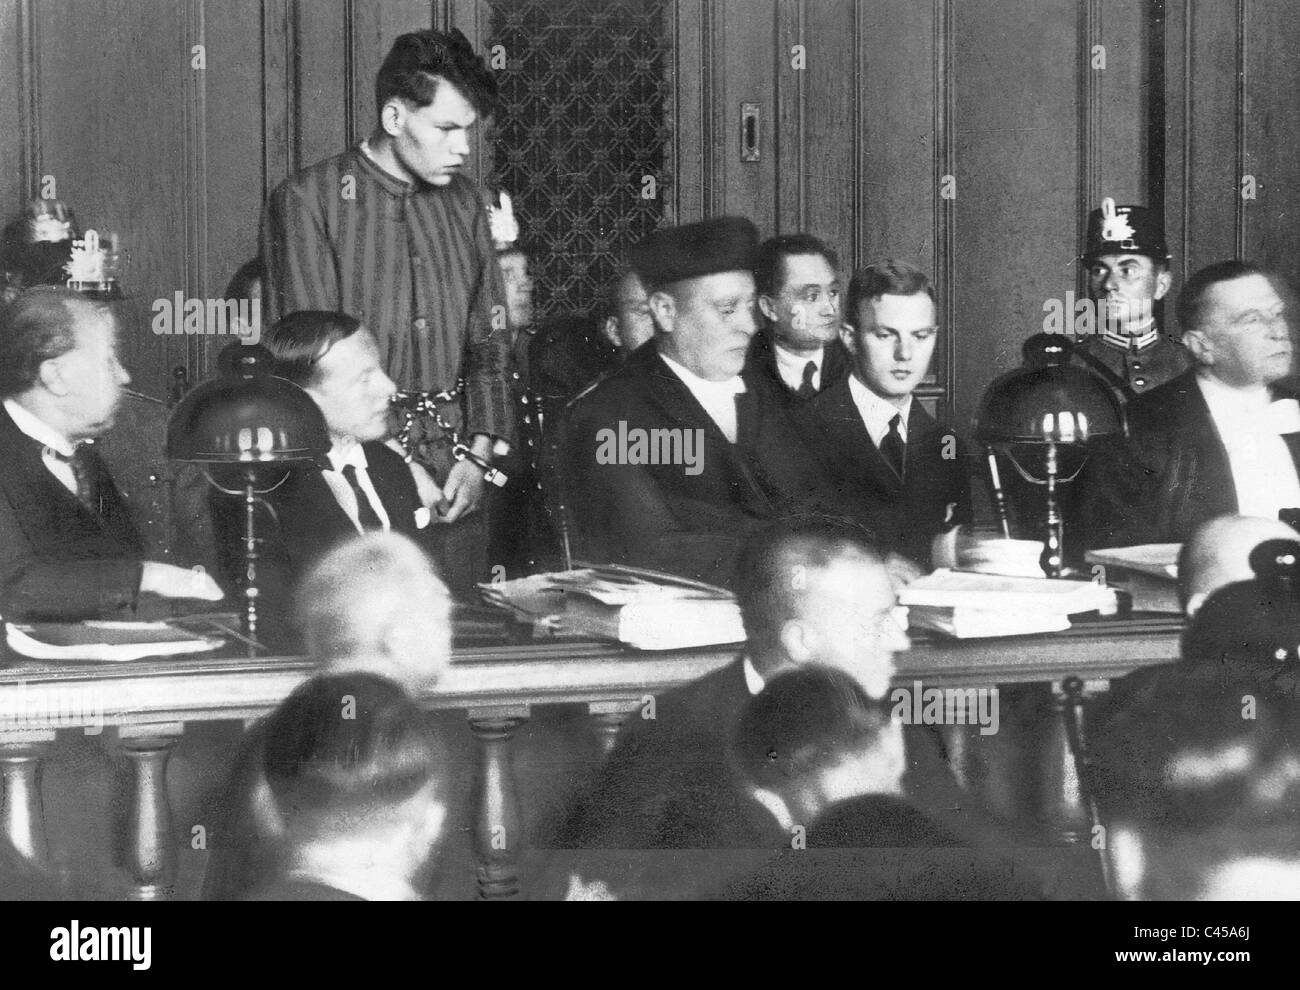 Accused Martinus van der Lubbe in the Reichstag fire trial, 1933 - Stock Image